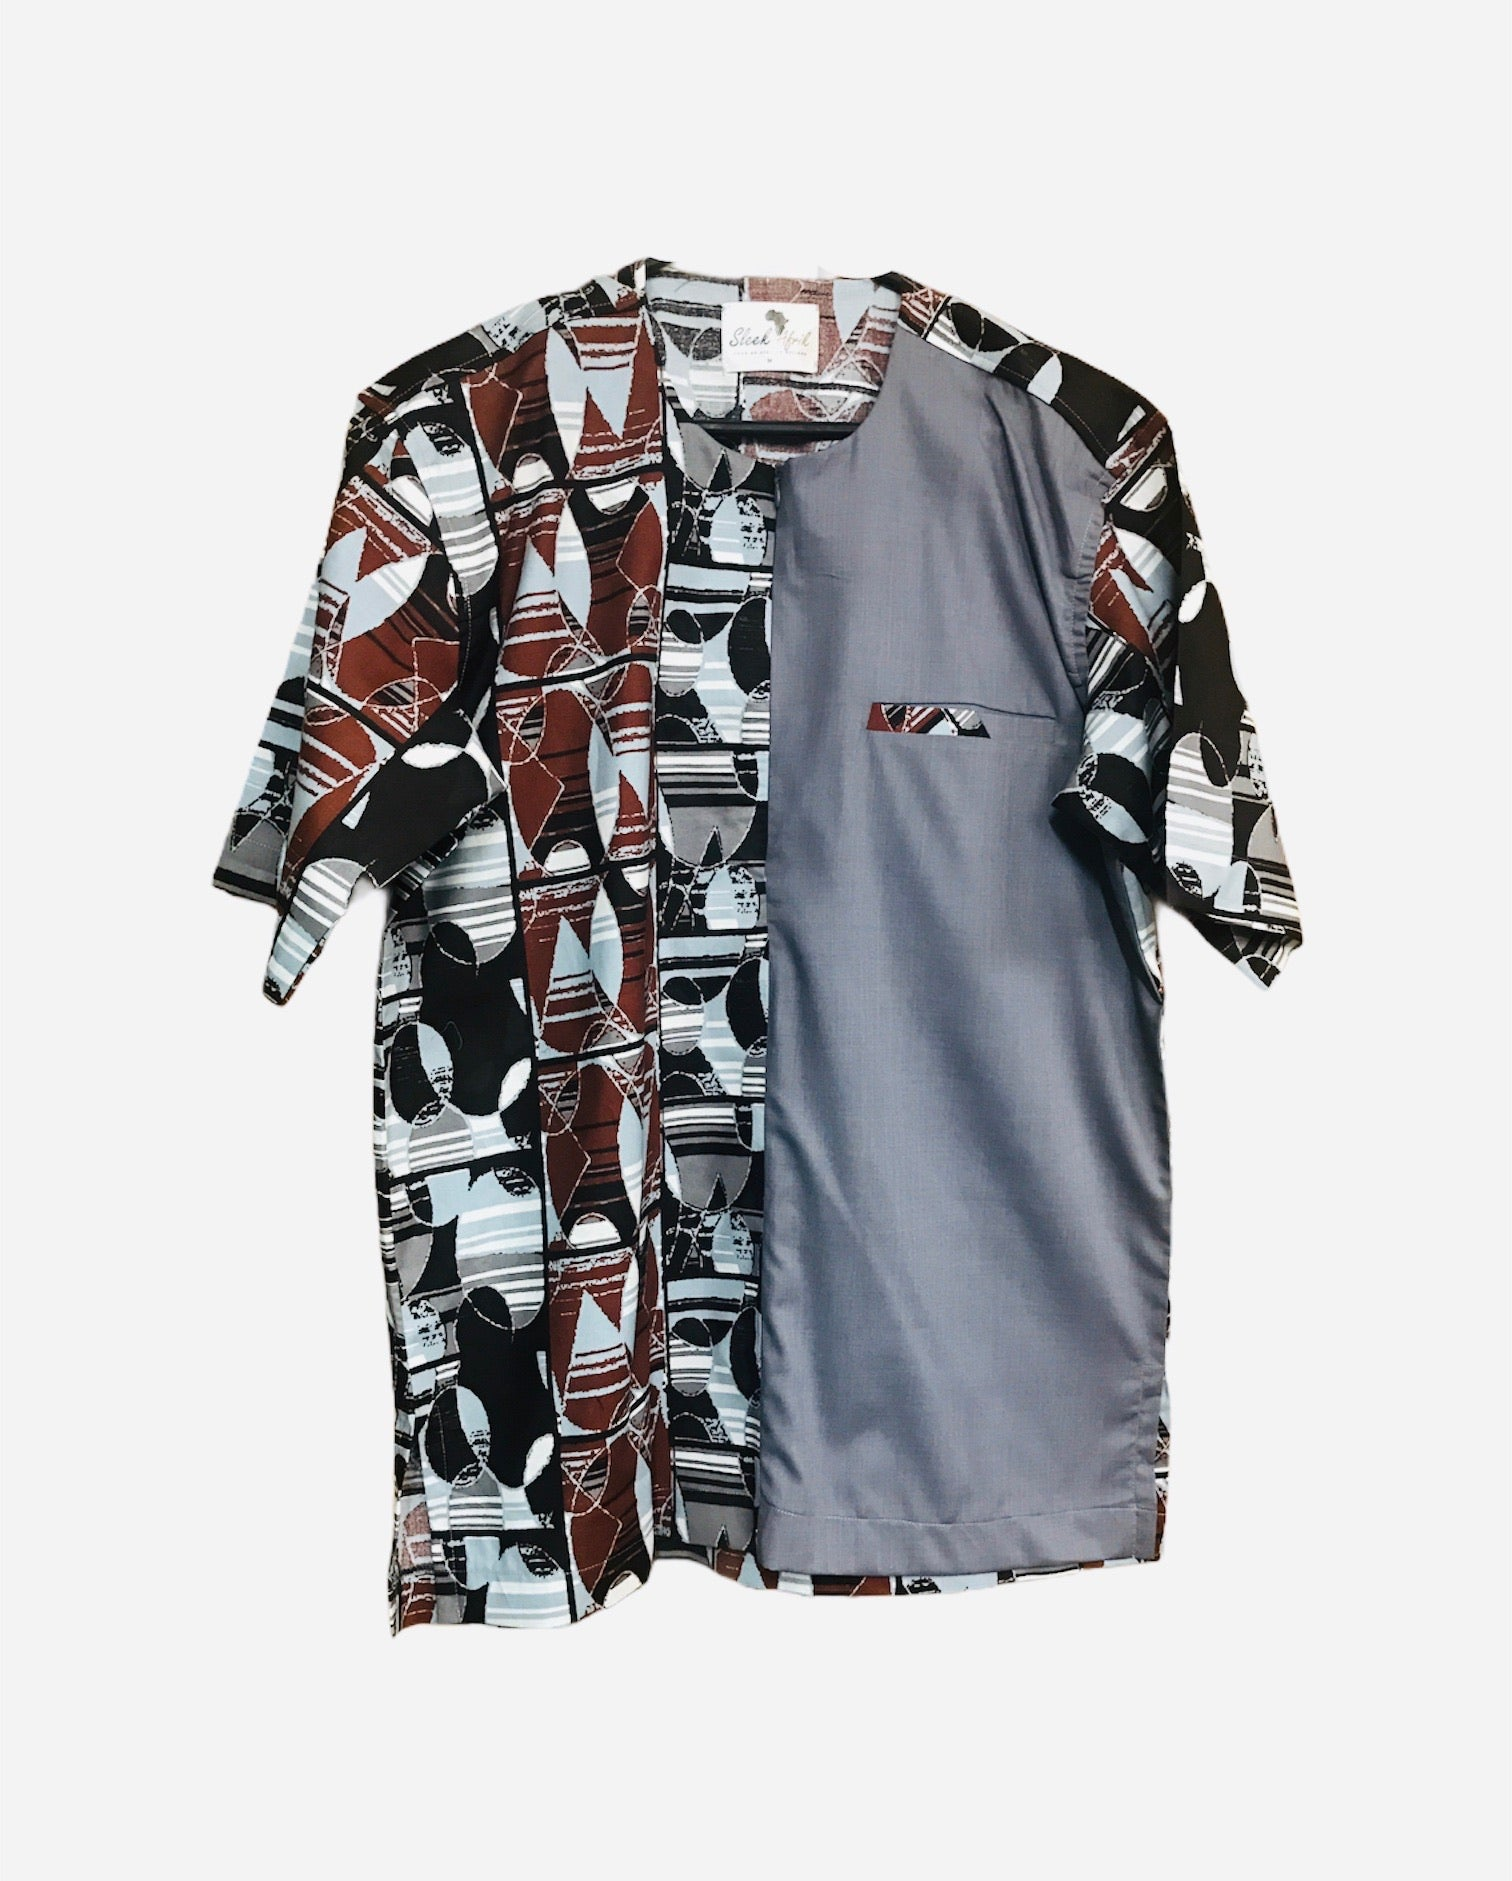 Afro Men's woodin shirt